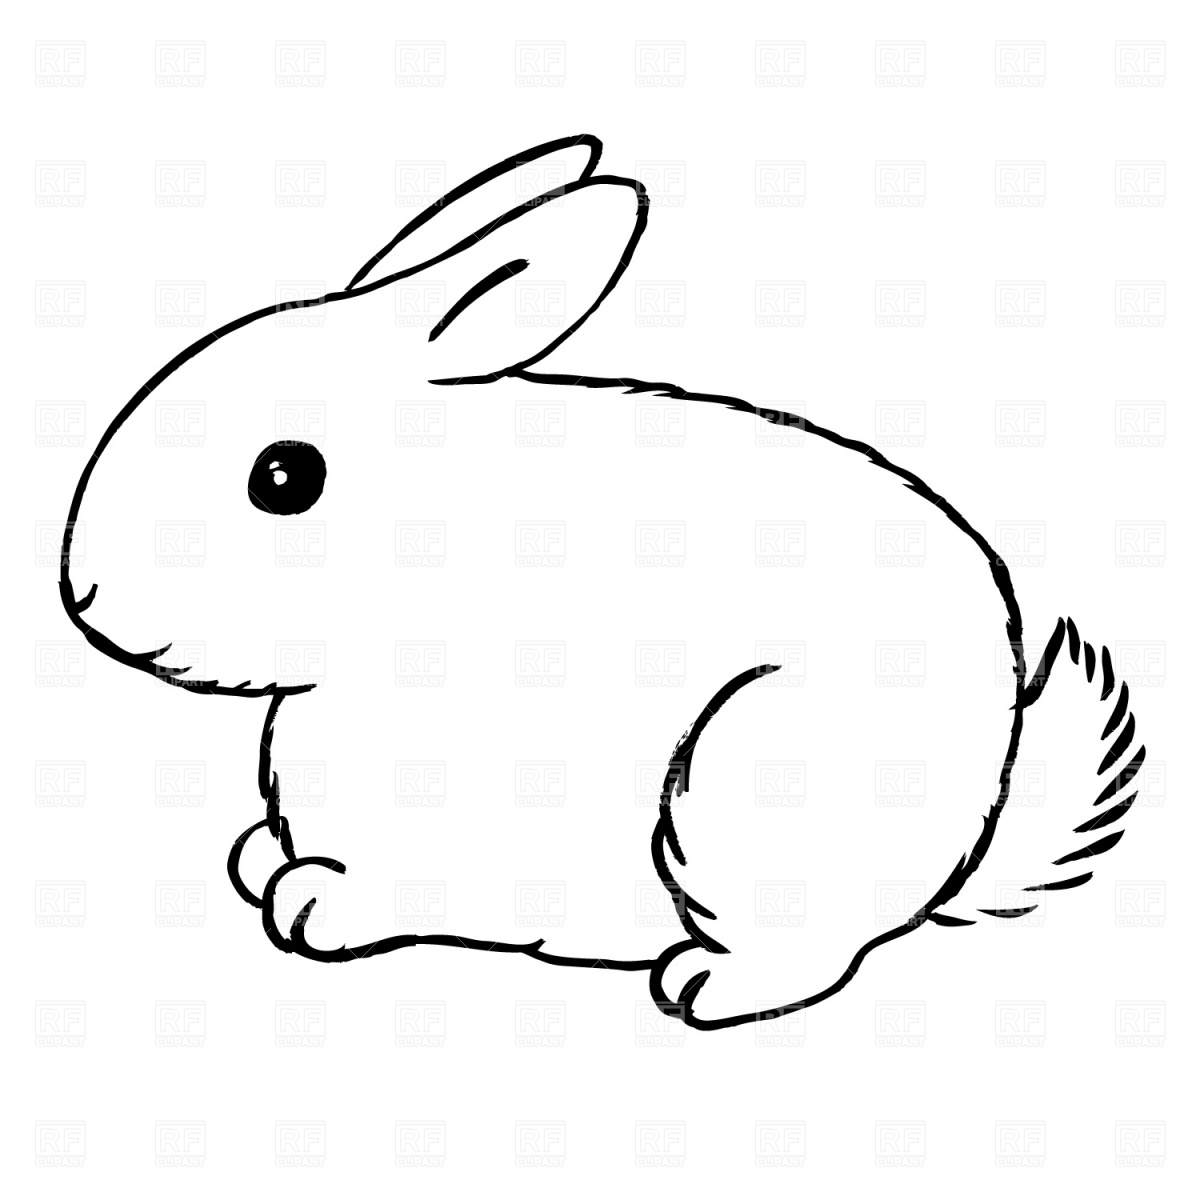 Bunny clipart #10, Download drawings